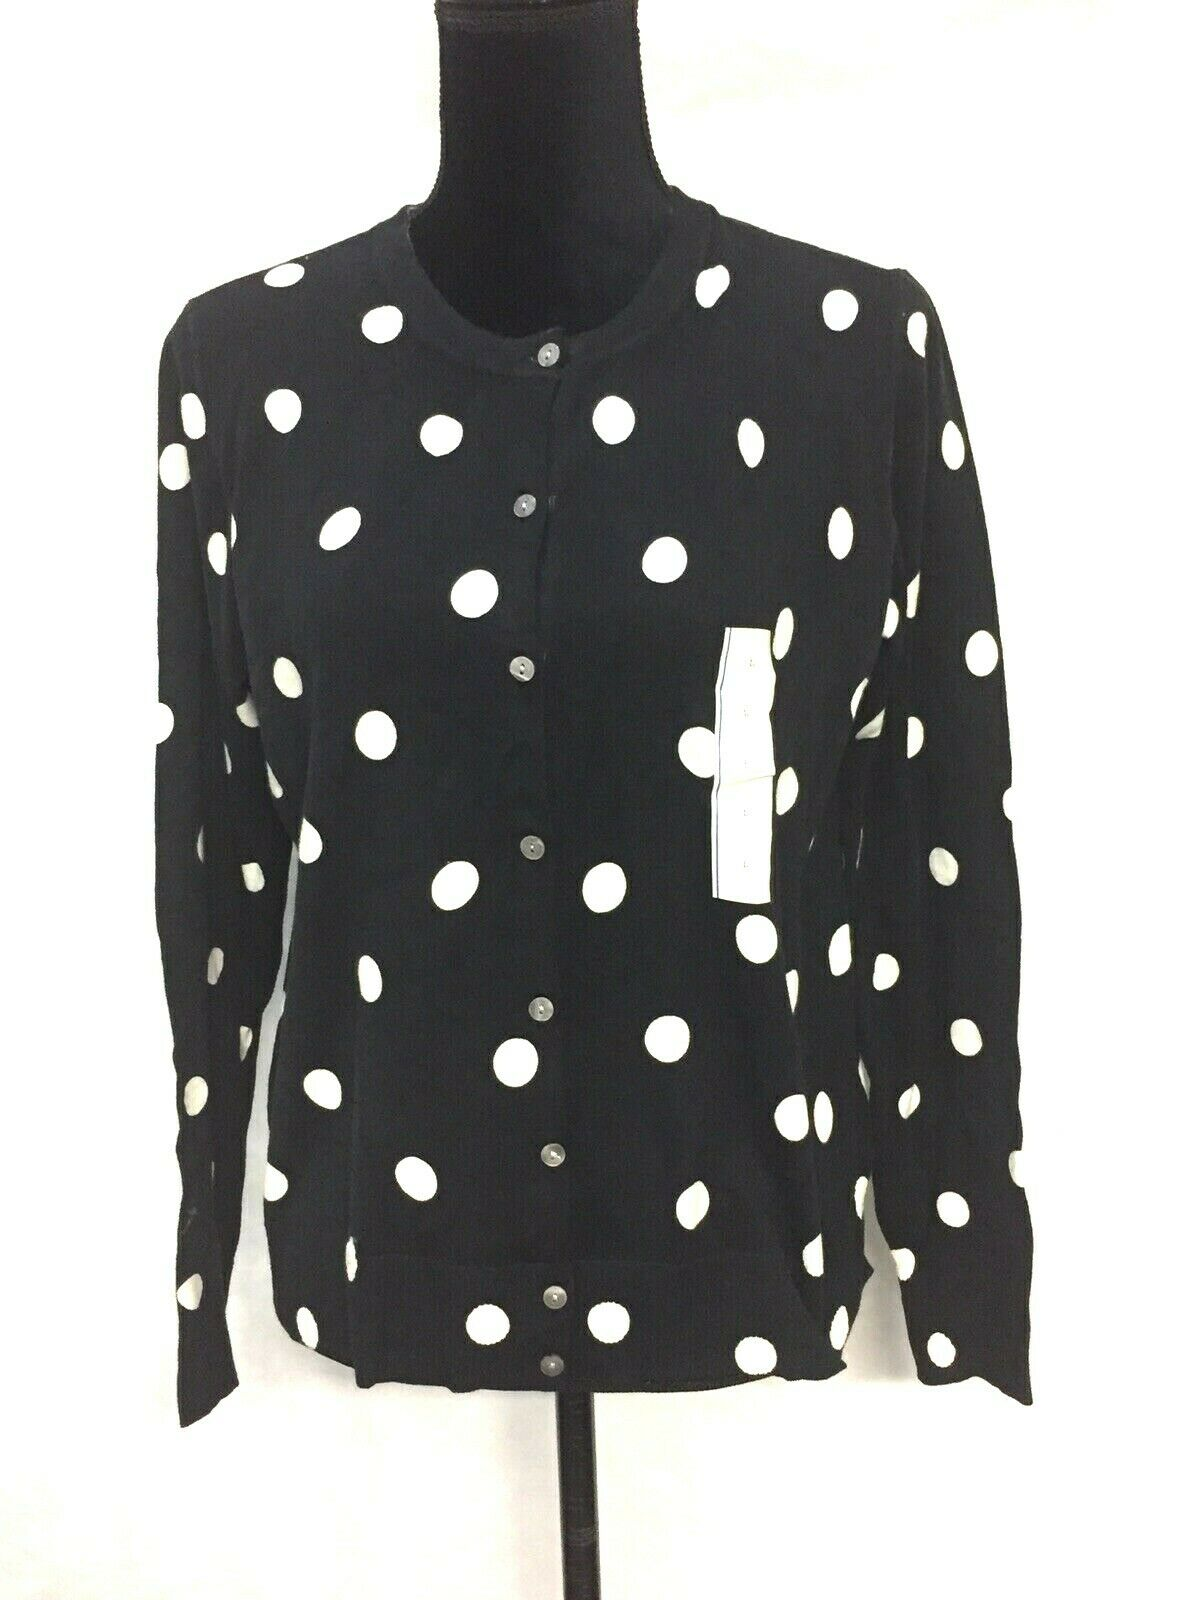 a.n.d Womens Polka Dot Sz L Cardigan Black White A New Day New With Tags Sweater